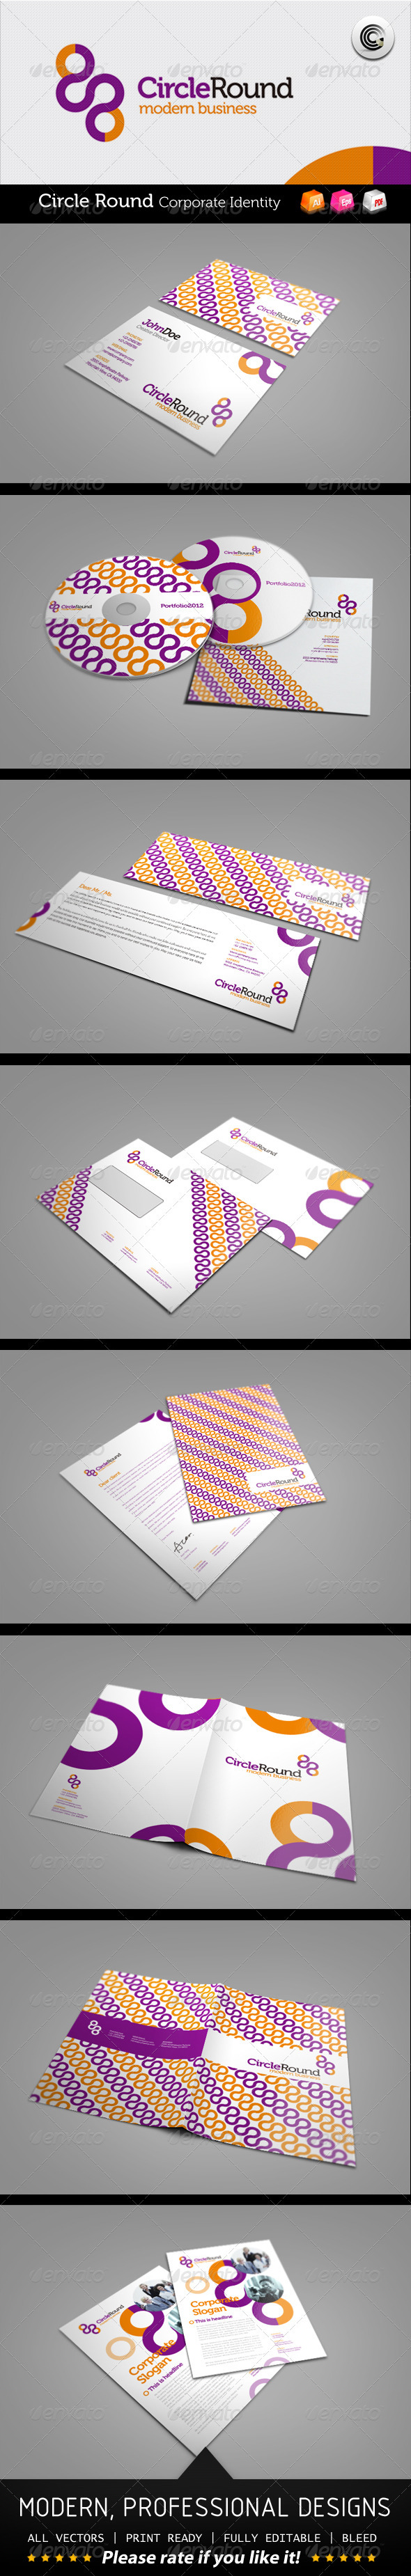 Circle Round Modern Business Corporate Identity - Stationery Print Templates